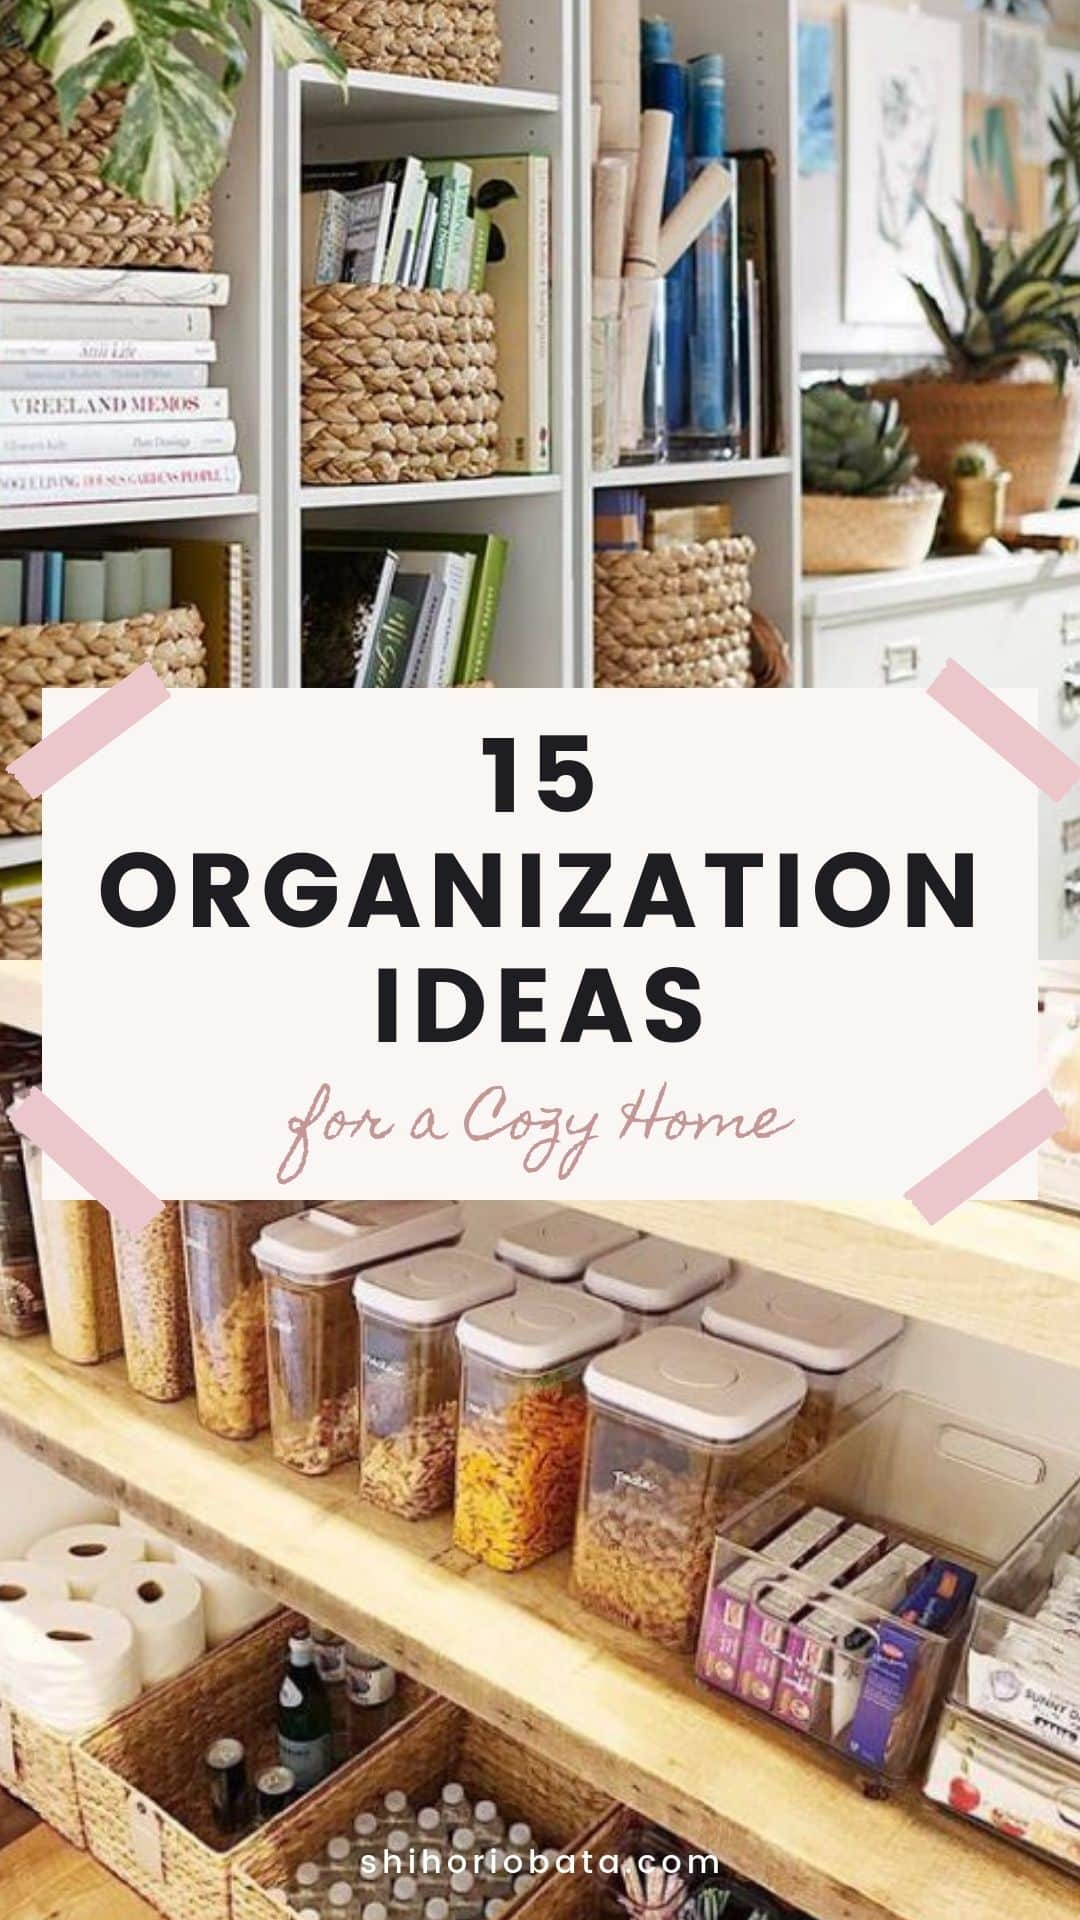 15 Organization Ideas for a Cozy Home